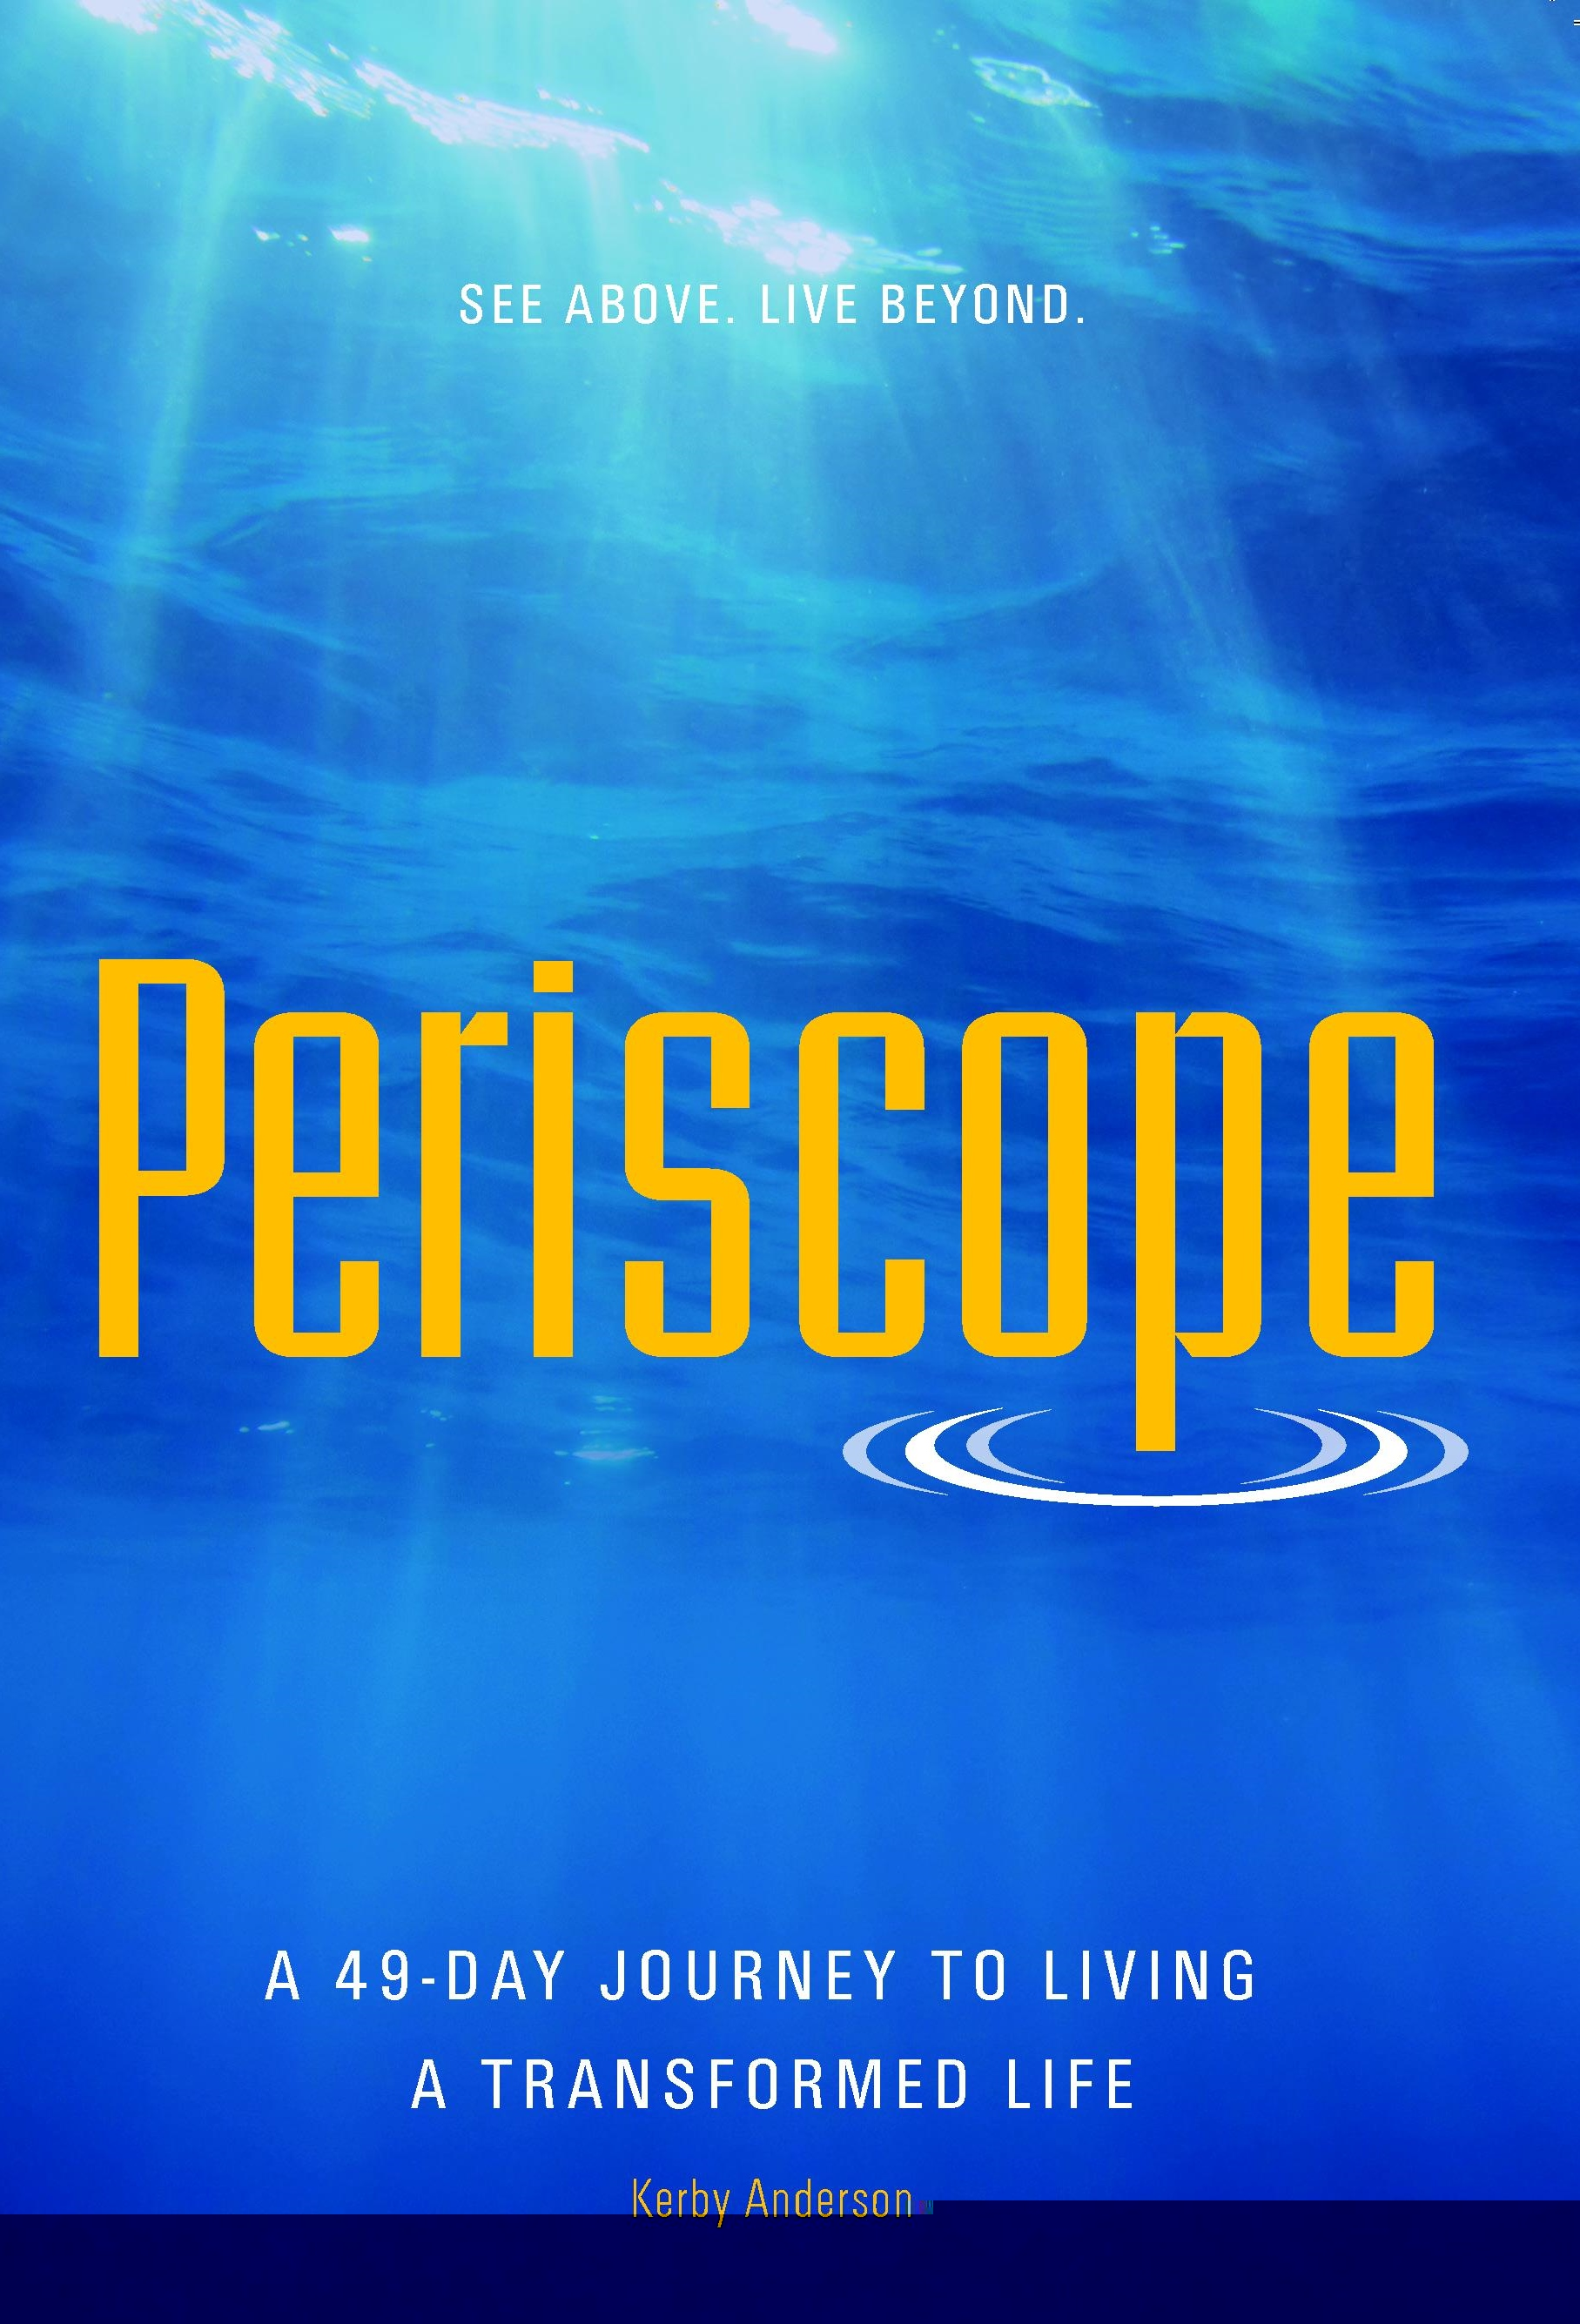 Periscope - 49 Day Journey to a Transformed Life